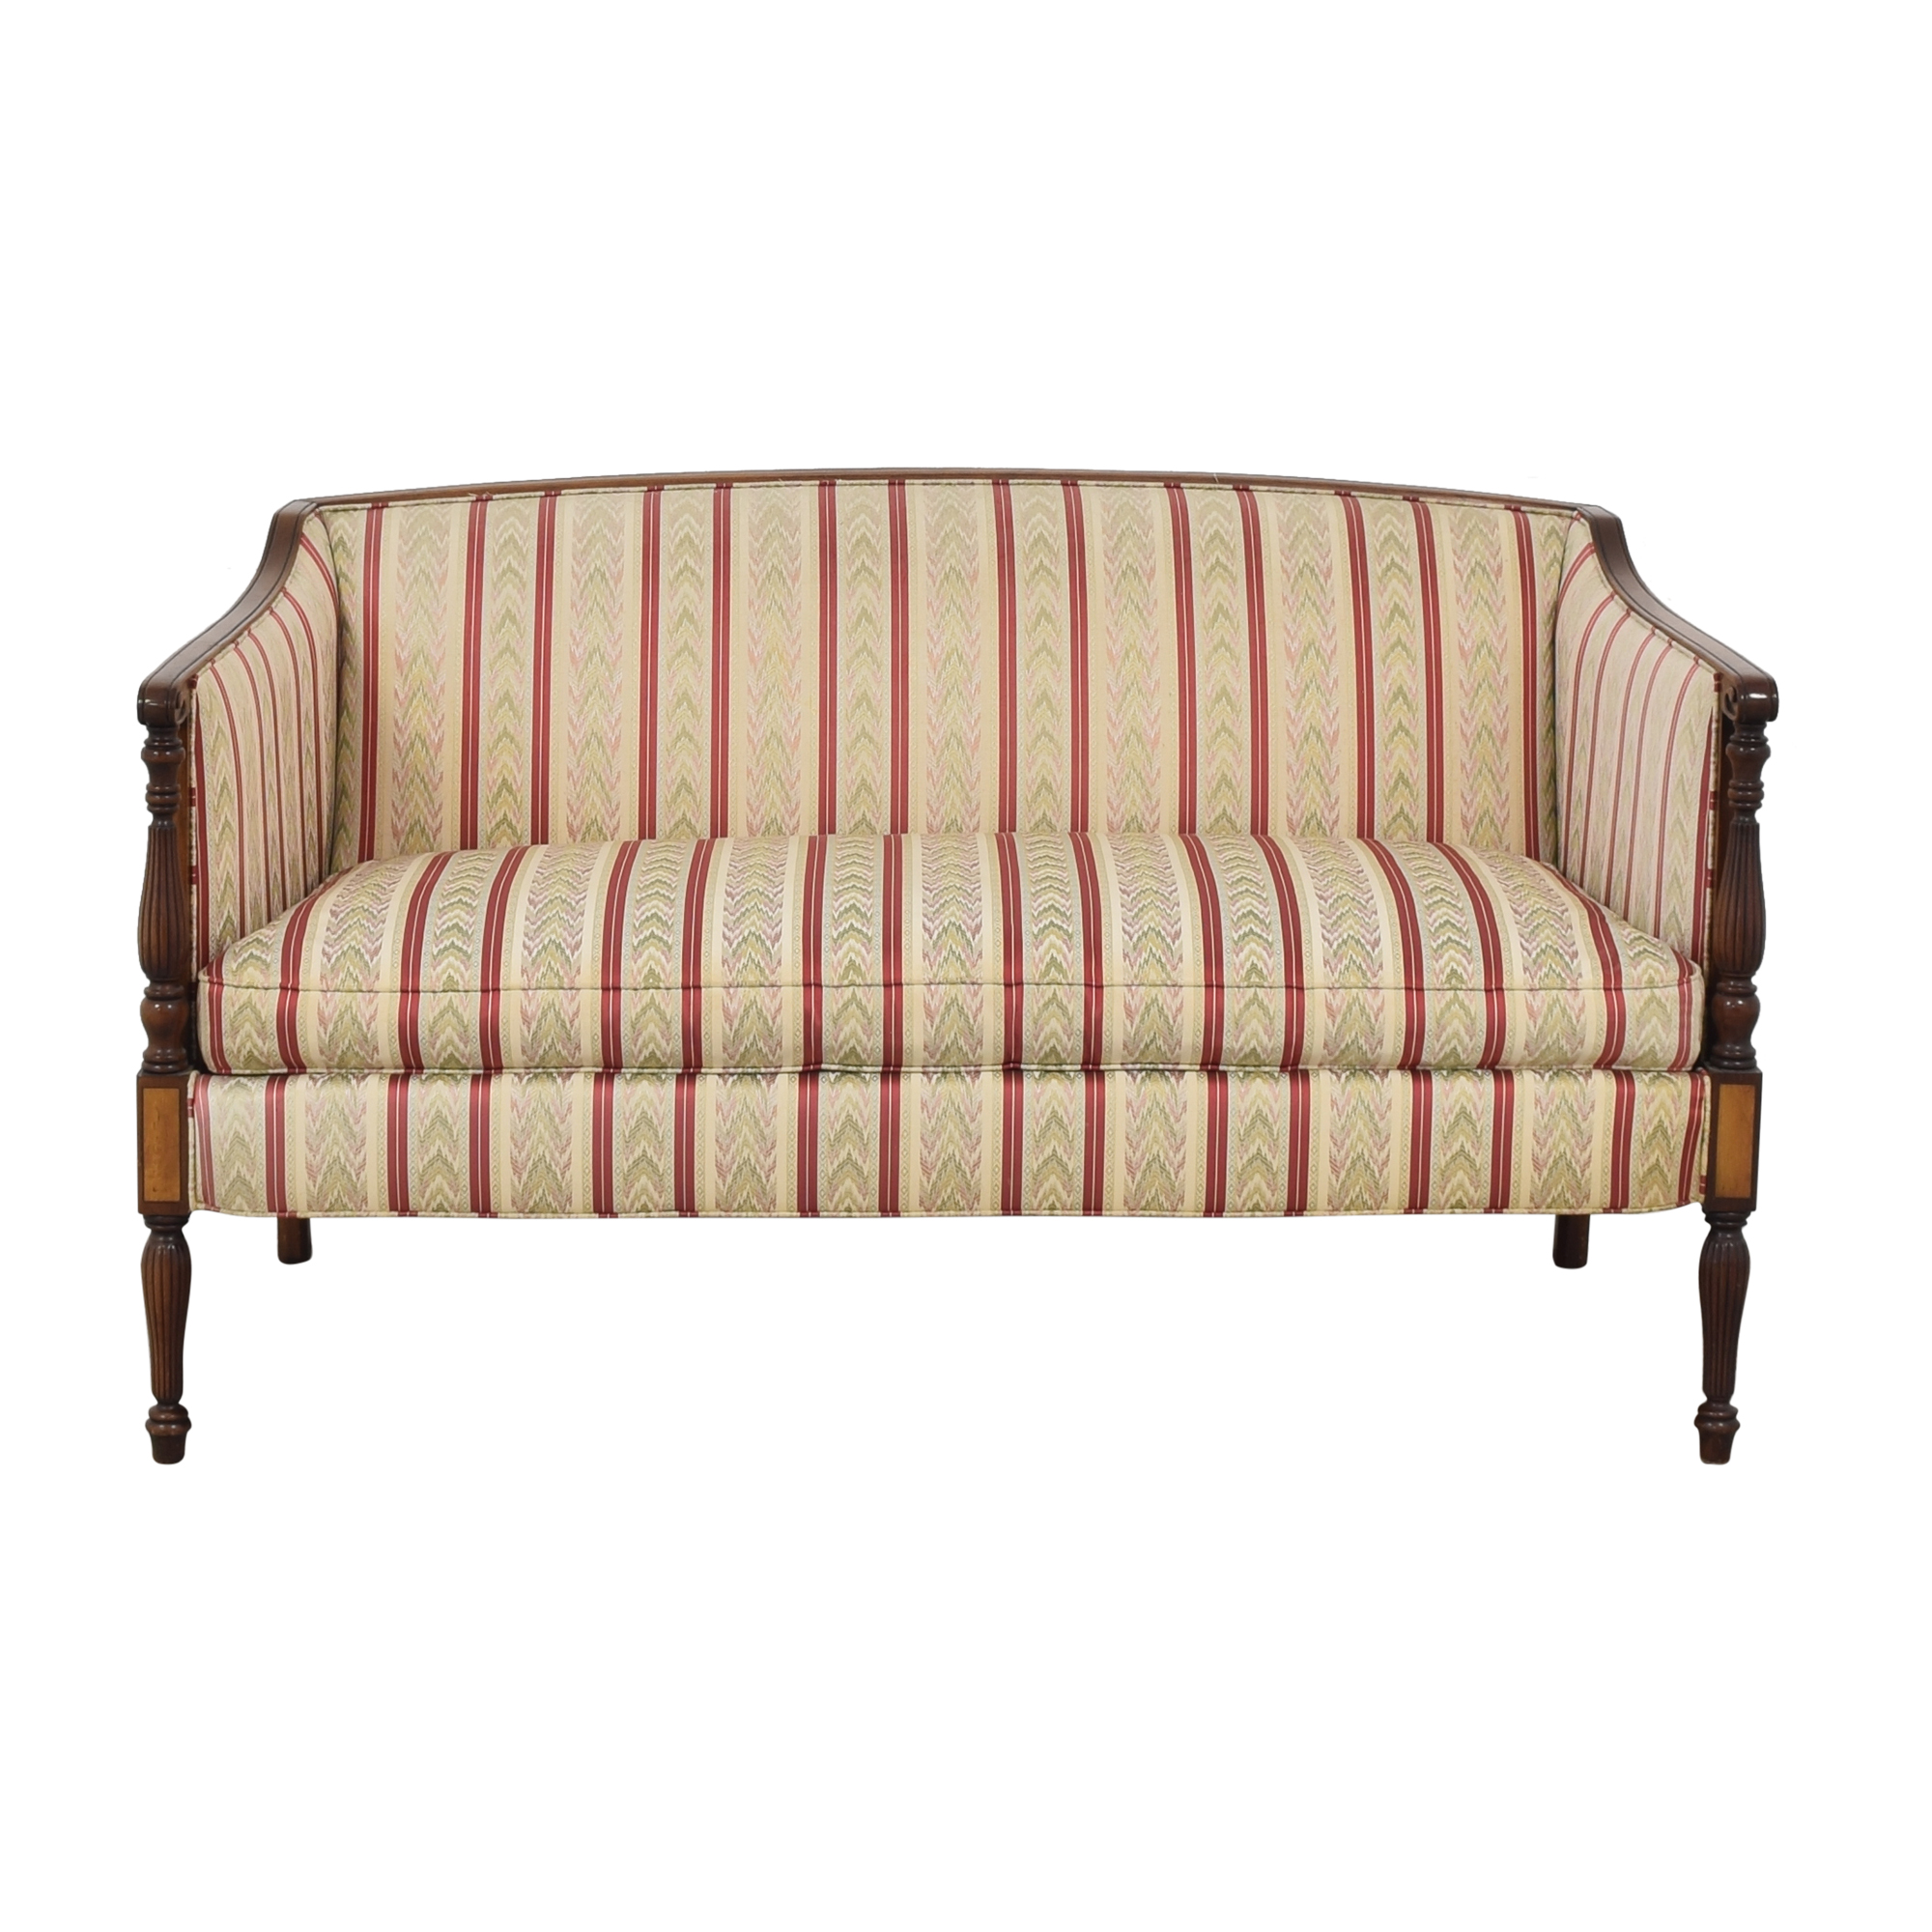 shop W & J Sloane Single Cushion Sofa W. & J. Sloane Sofas